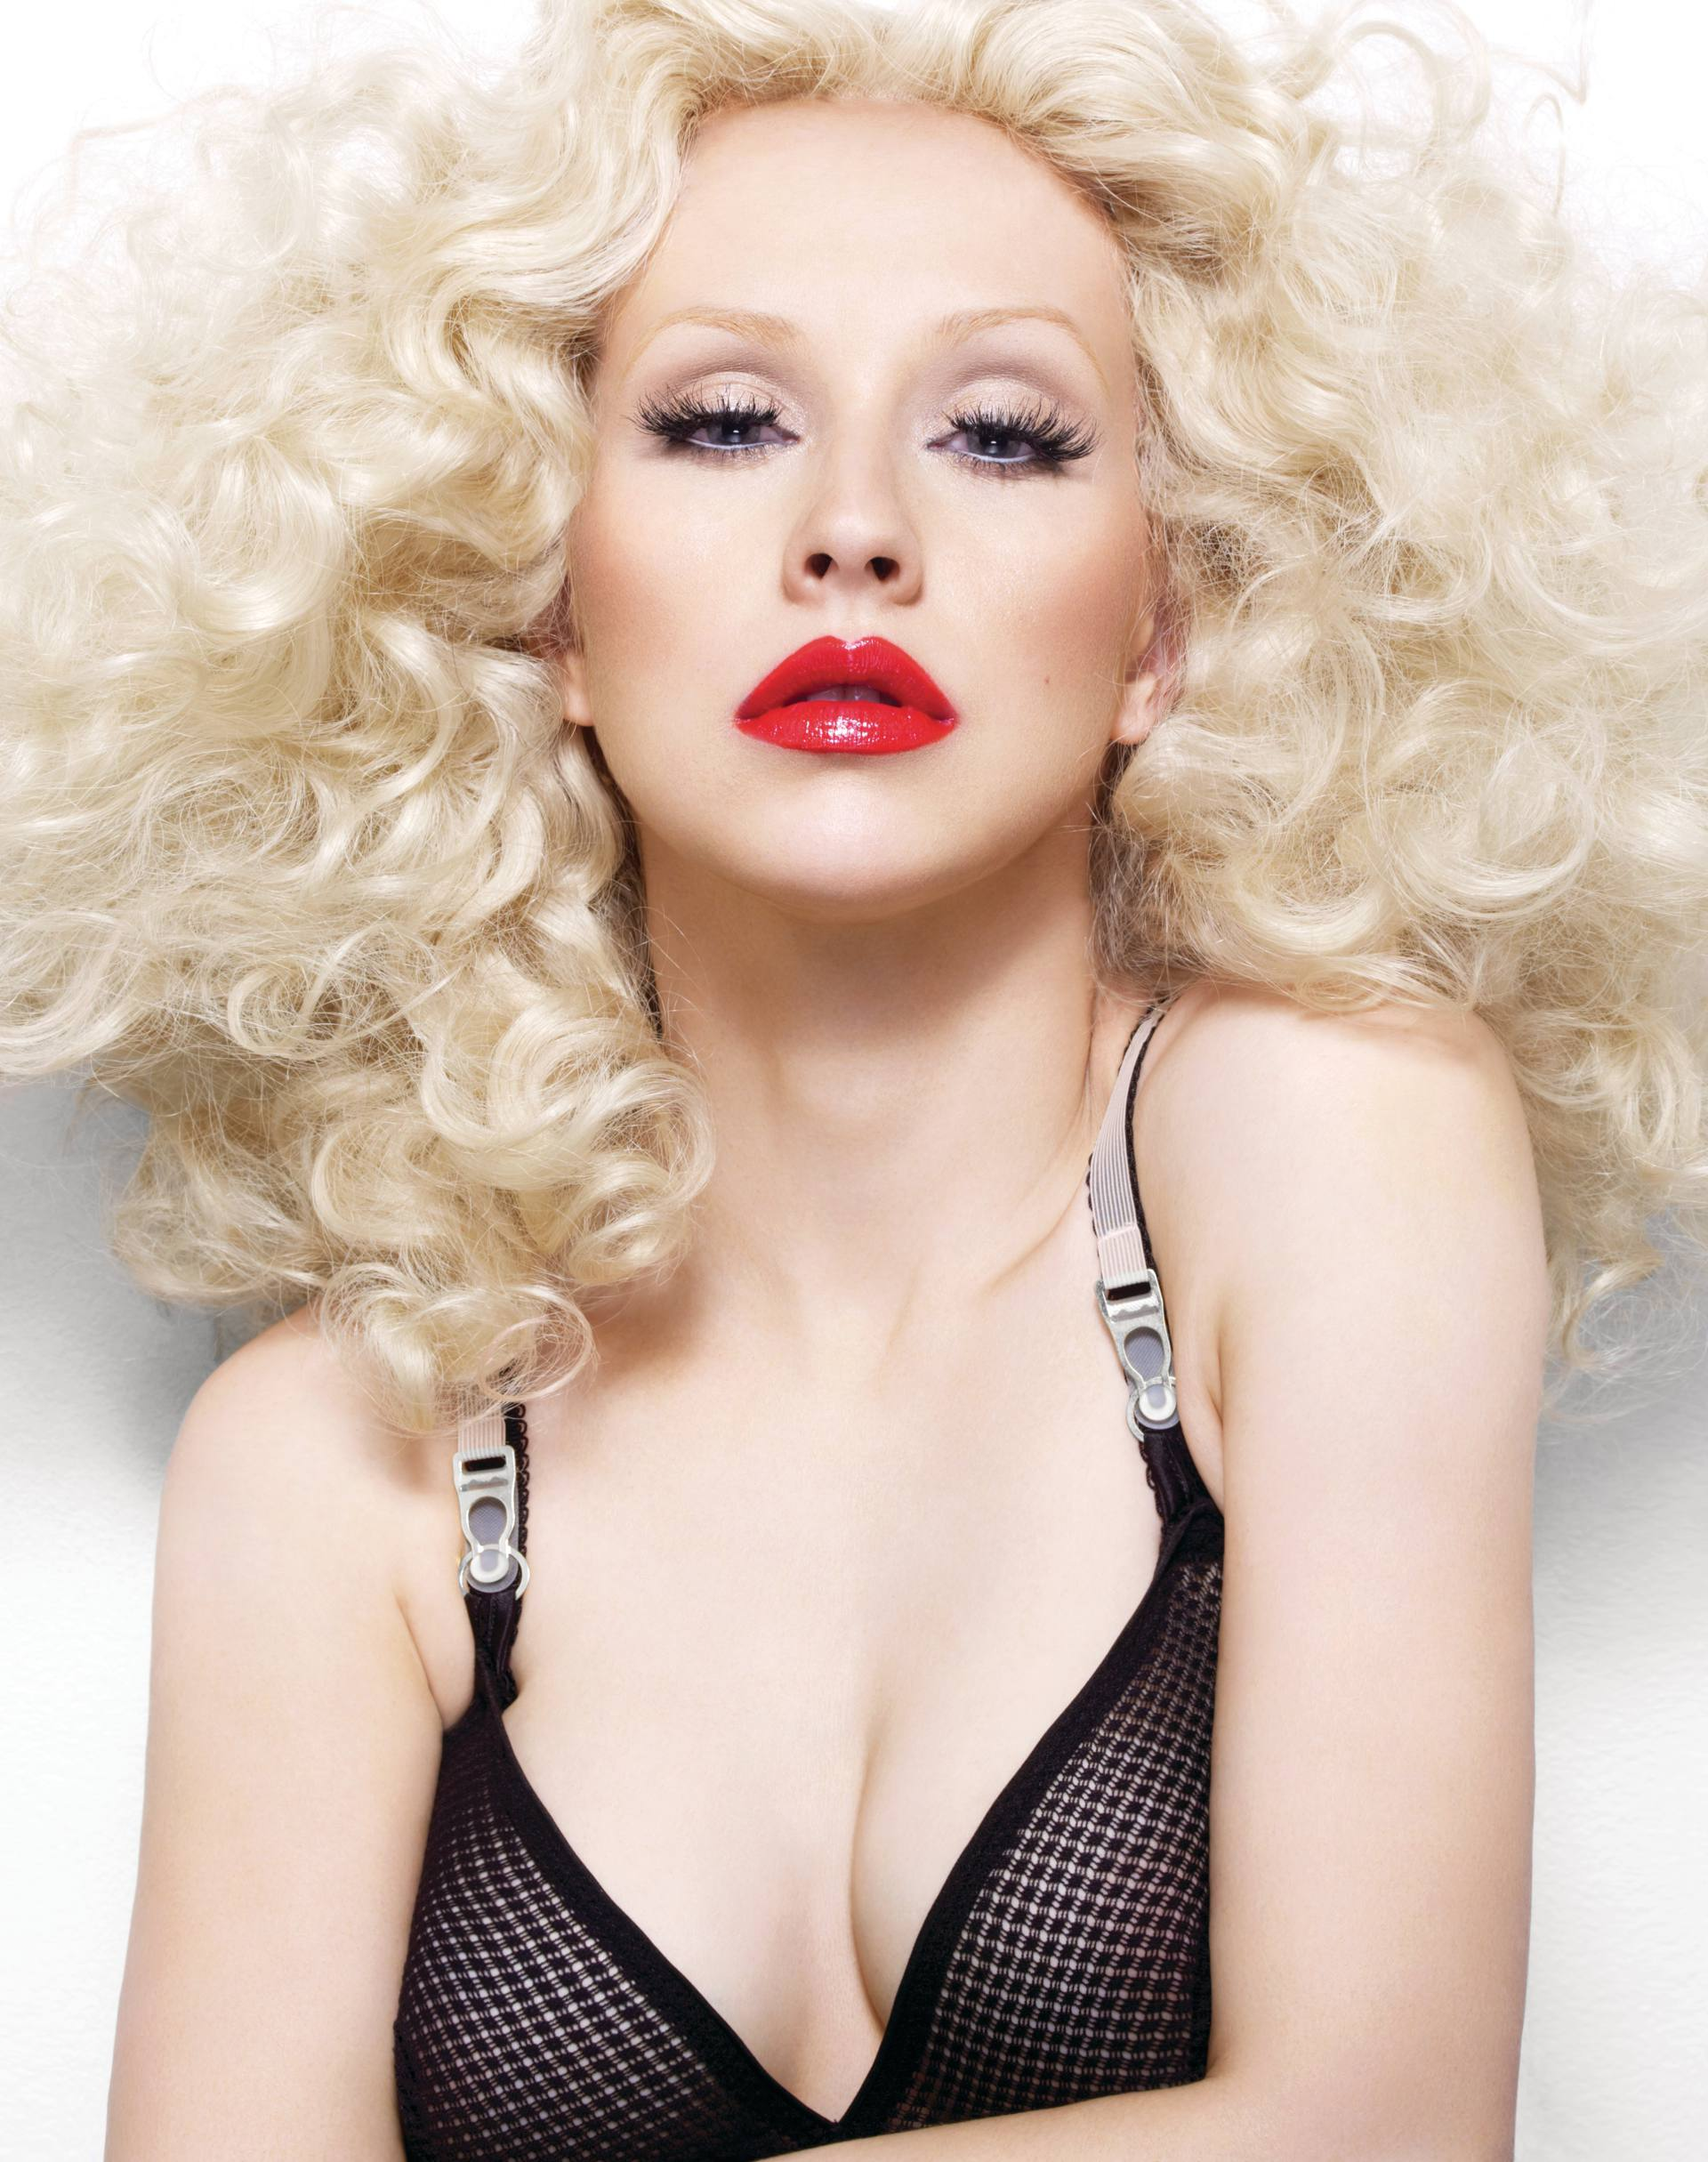 Christina Aguilera – Sexy Boobs In Naked Photoshoot Outtakes From Bionic Album Photoshoot 0014